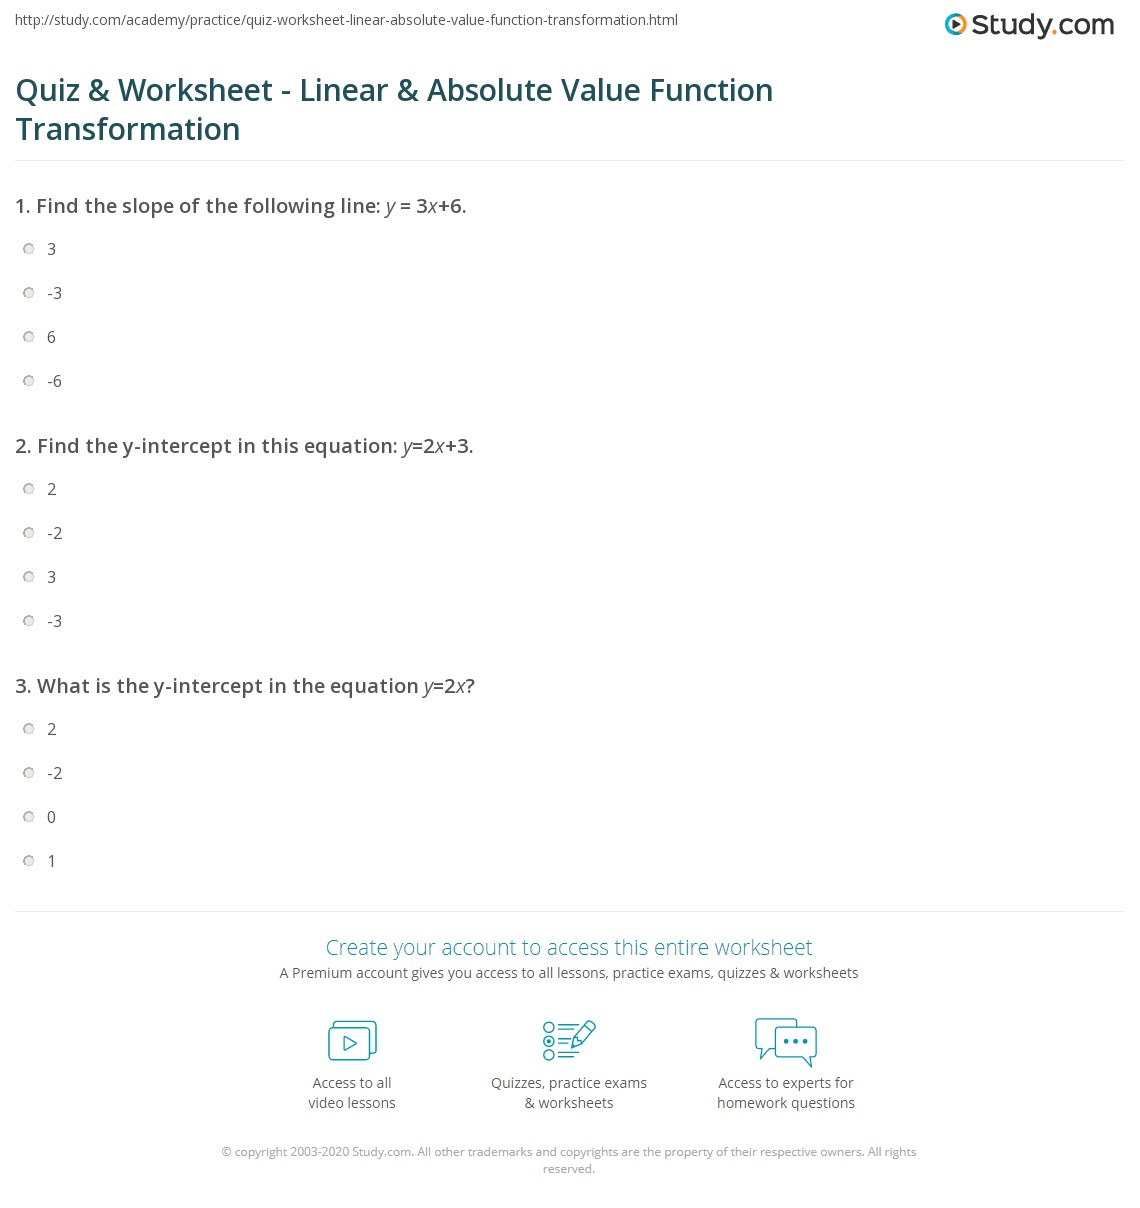 quiz & worksheet - linear & absolute value function transformation